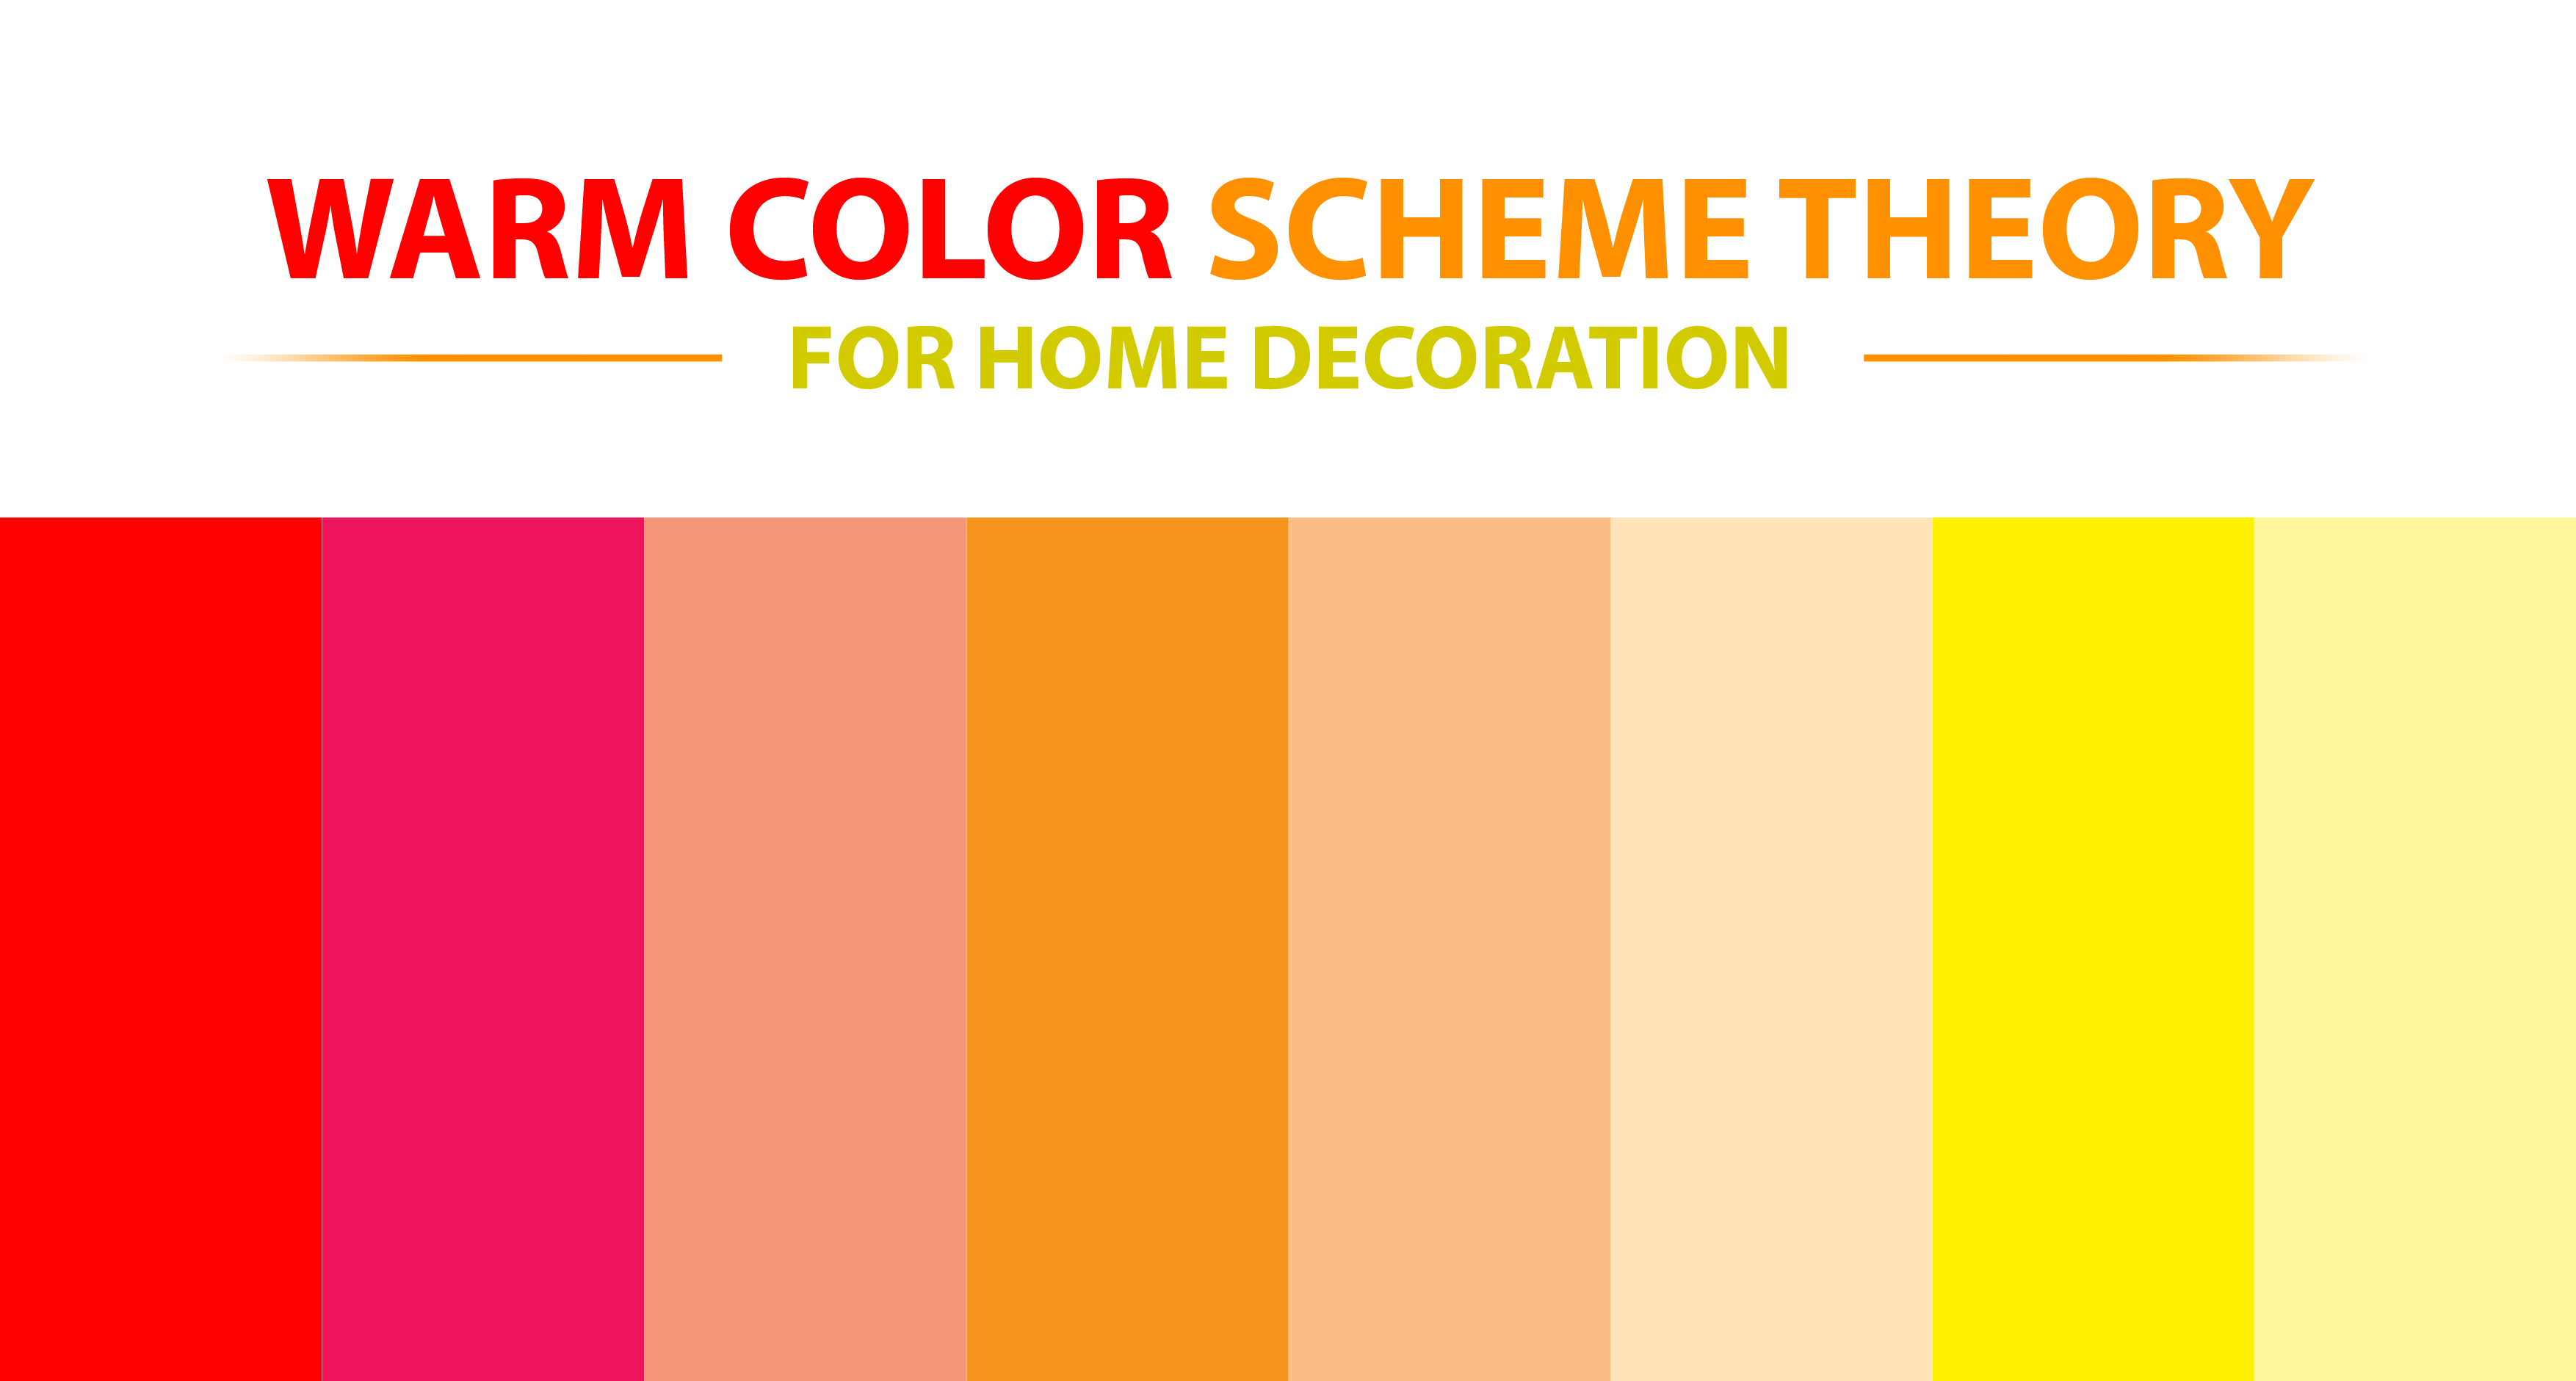 Warm Color Palette Fair Warm Color Scheme Theory For Home Decoration  Roy Home Design Design Decoration